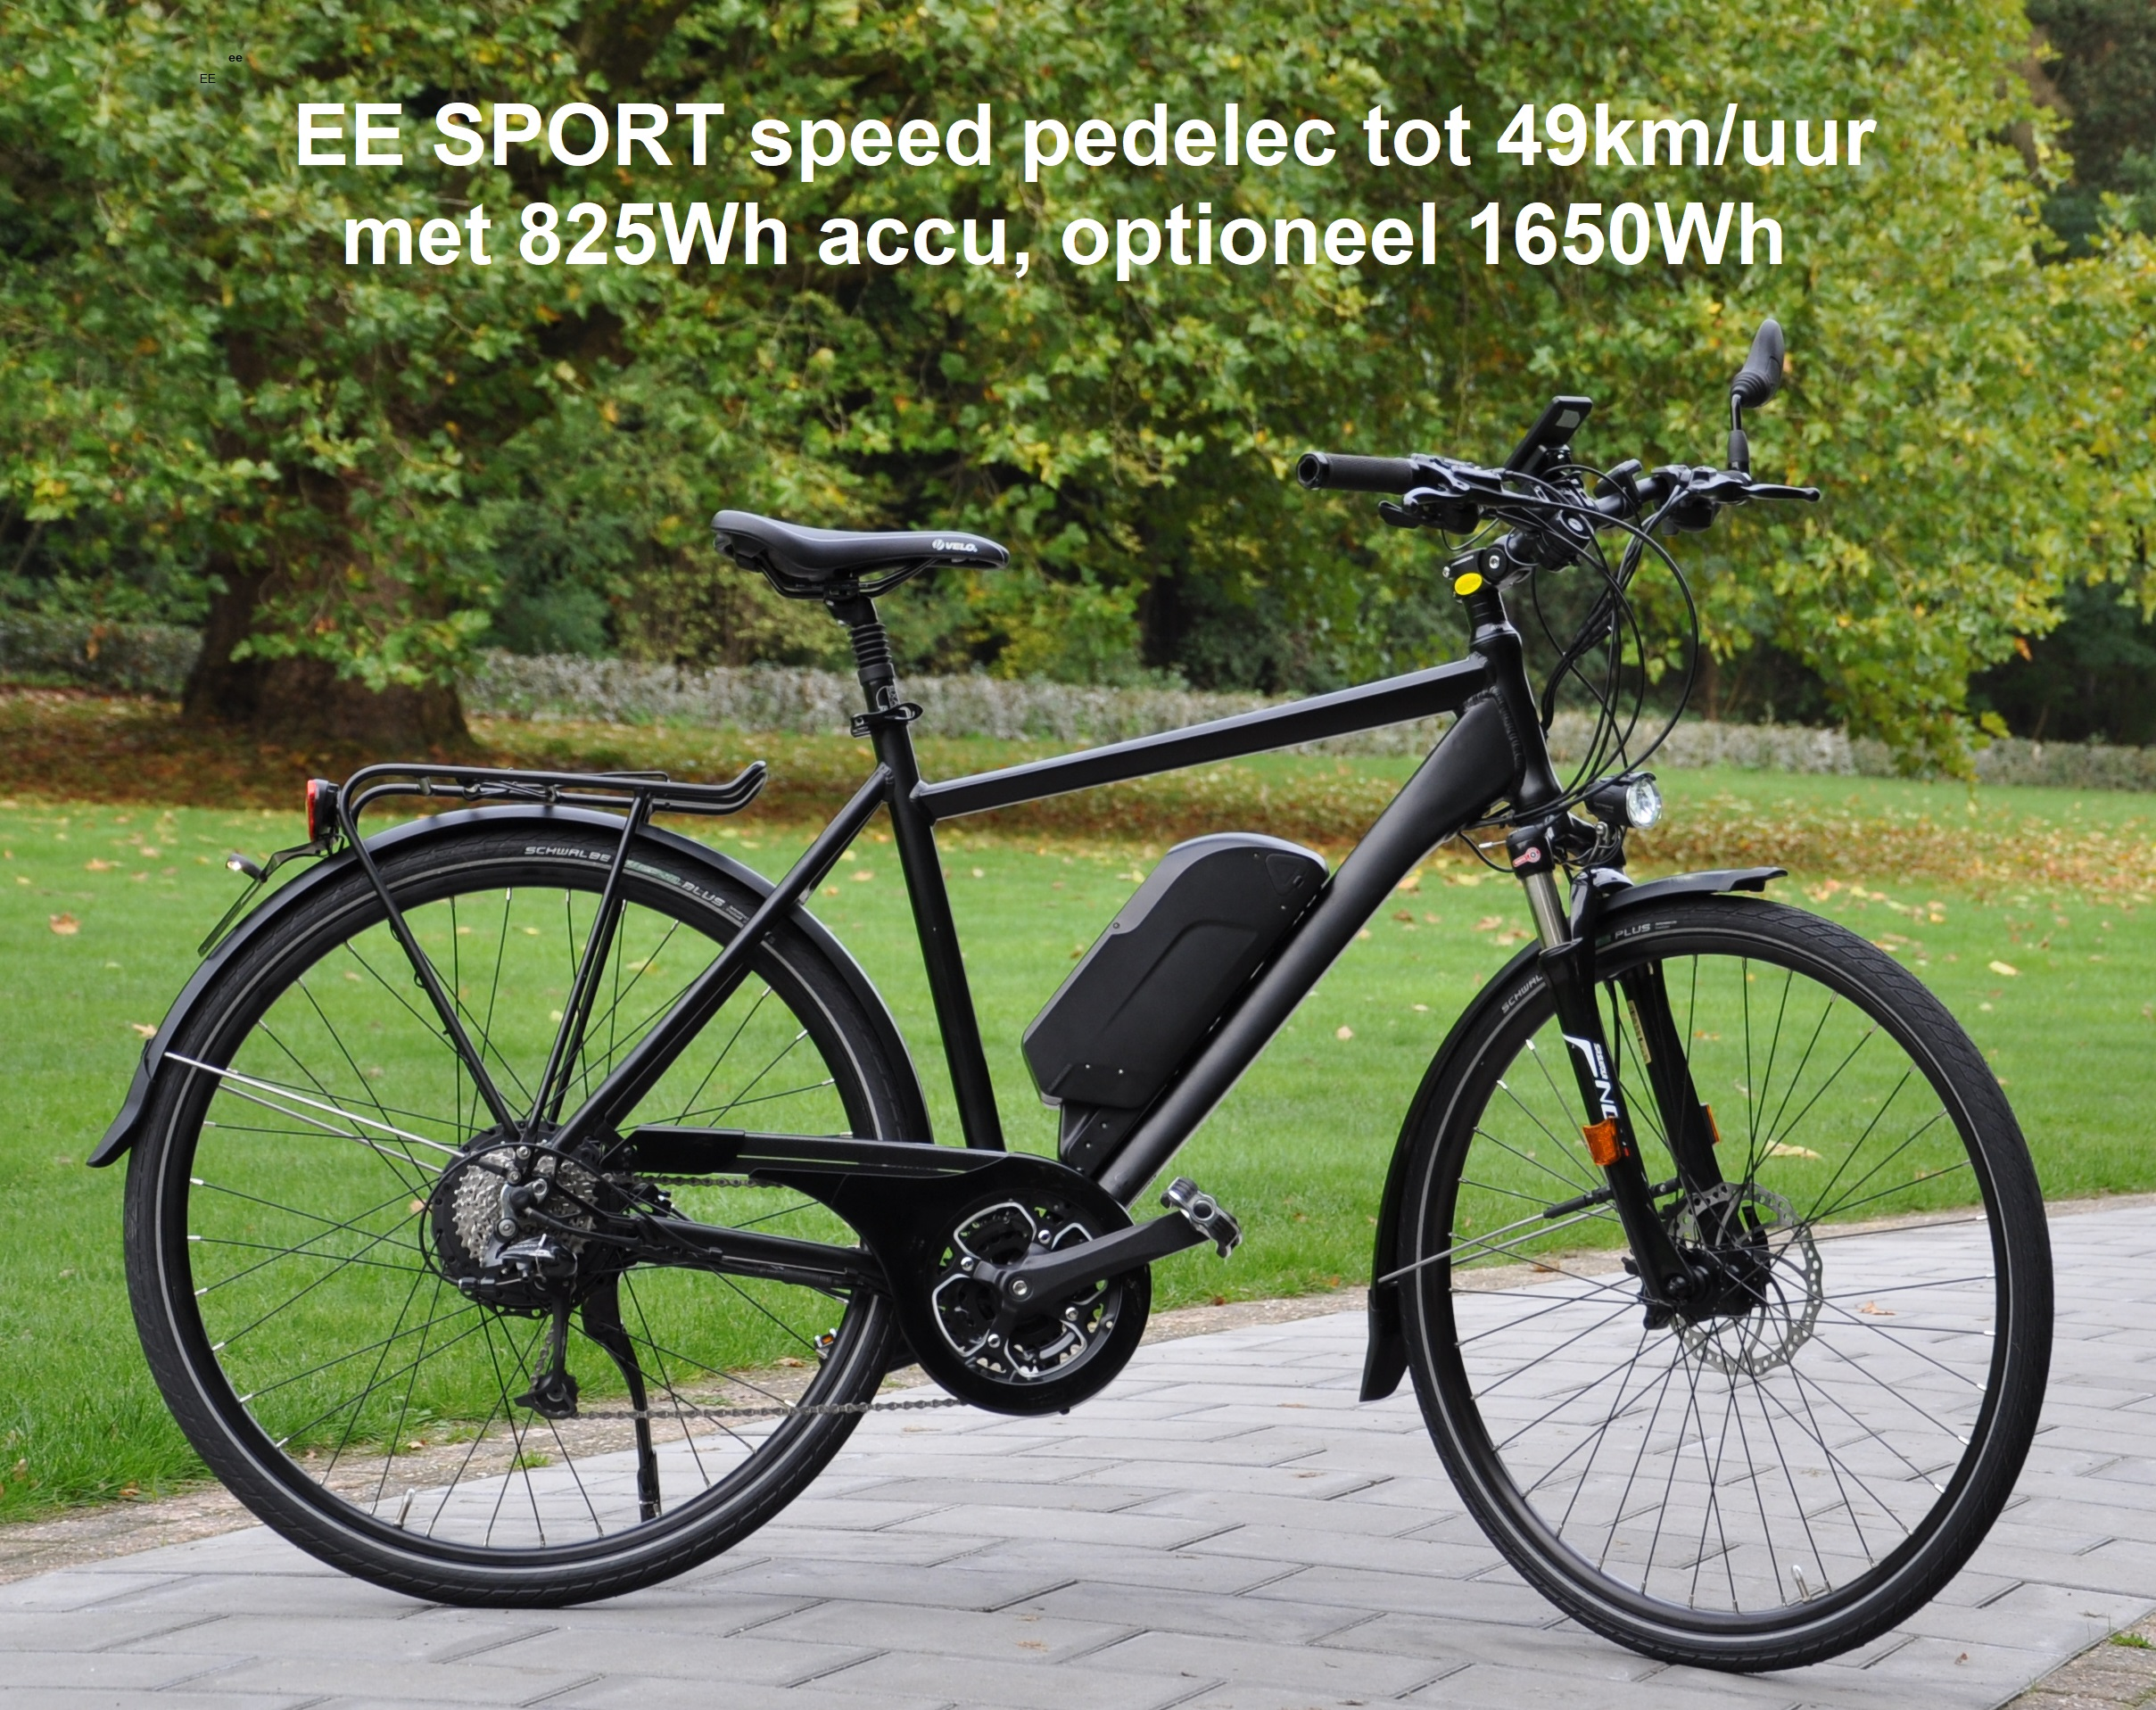 EE SPORT speed pedelec Bladel, speed pedelec  Hapert,  speed pedelec  Hoogeloon, Speed pedelec Casteren, speed pedelec  Netersel, Profile Bito, Hermans Tweewielers, Van Hoof Fietsen